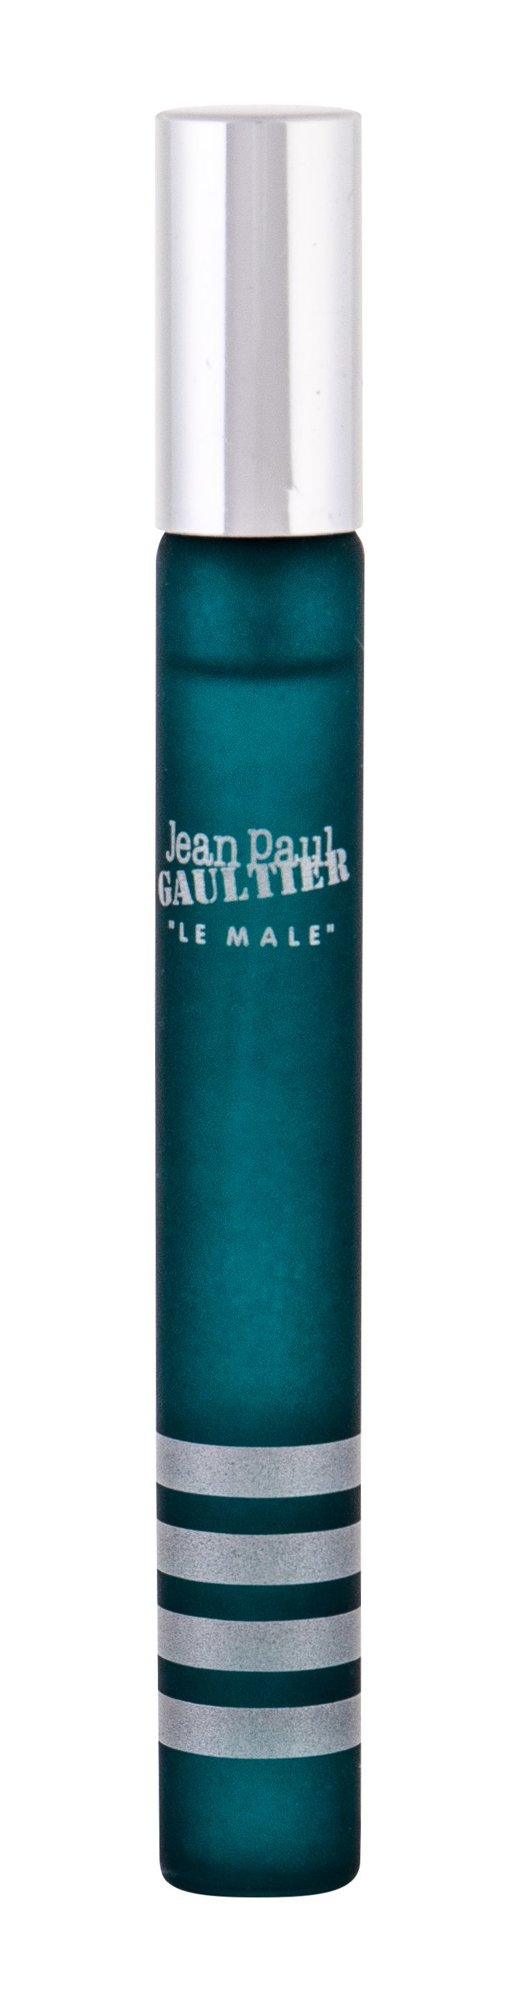 Jean Paul Gaultier Le Male, edt 10ml